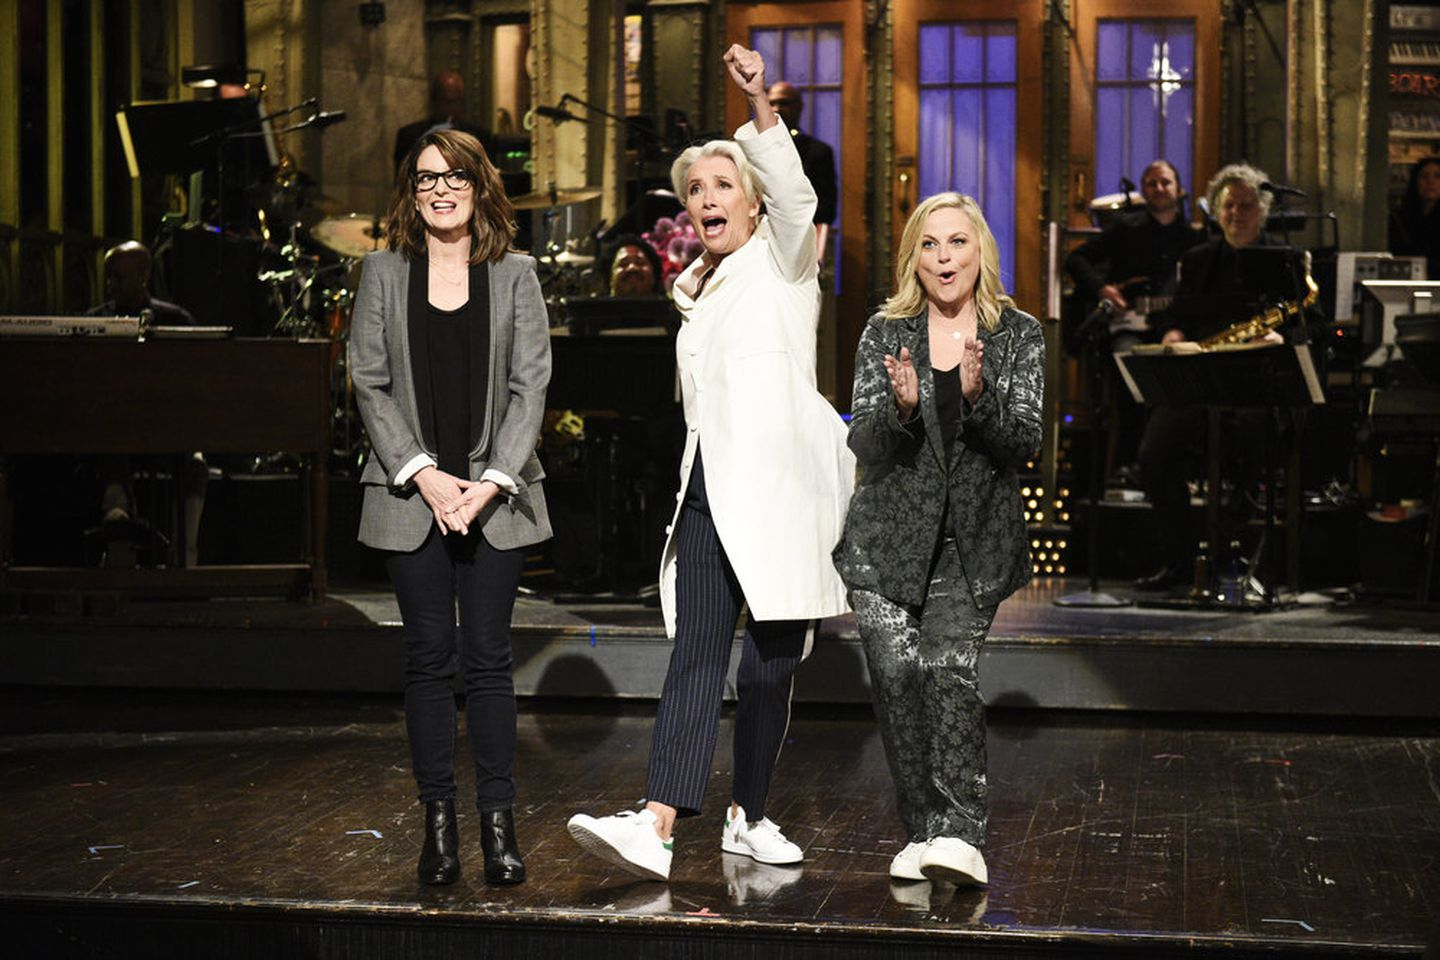 'Saturday Night Live' Moms And Son Pay Sweet Homage To Mothers